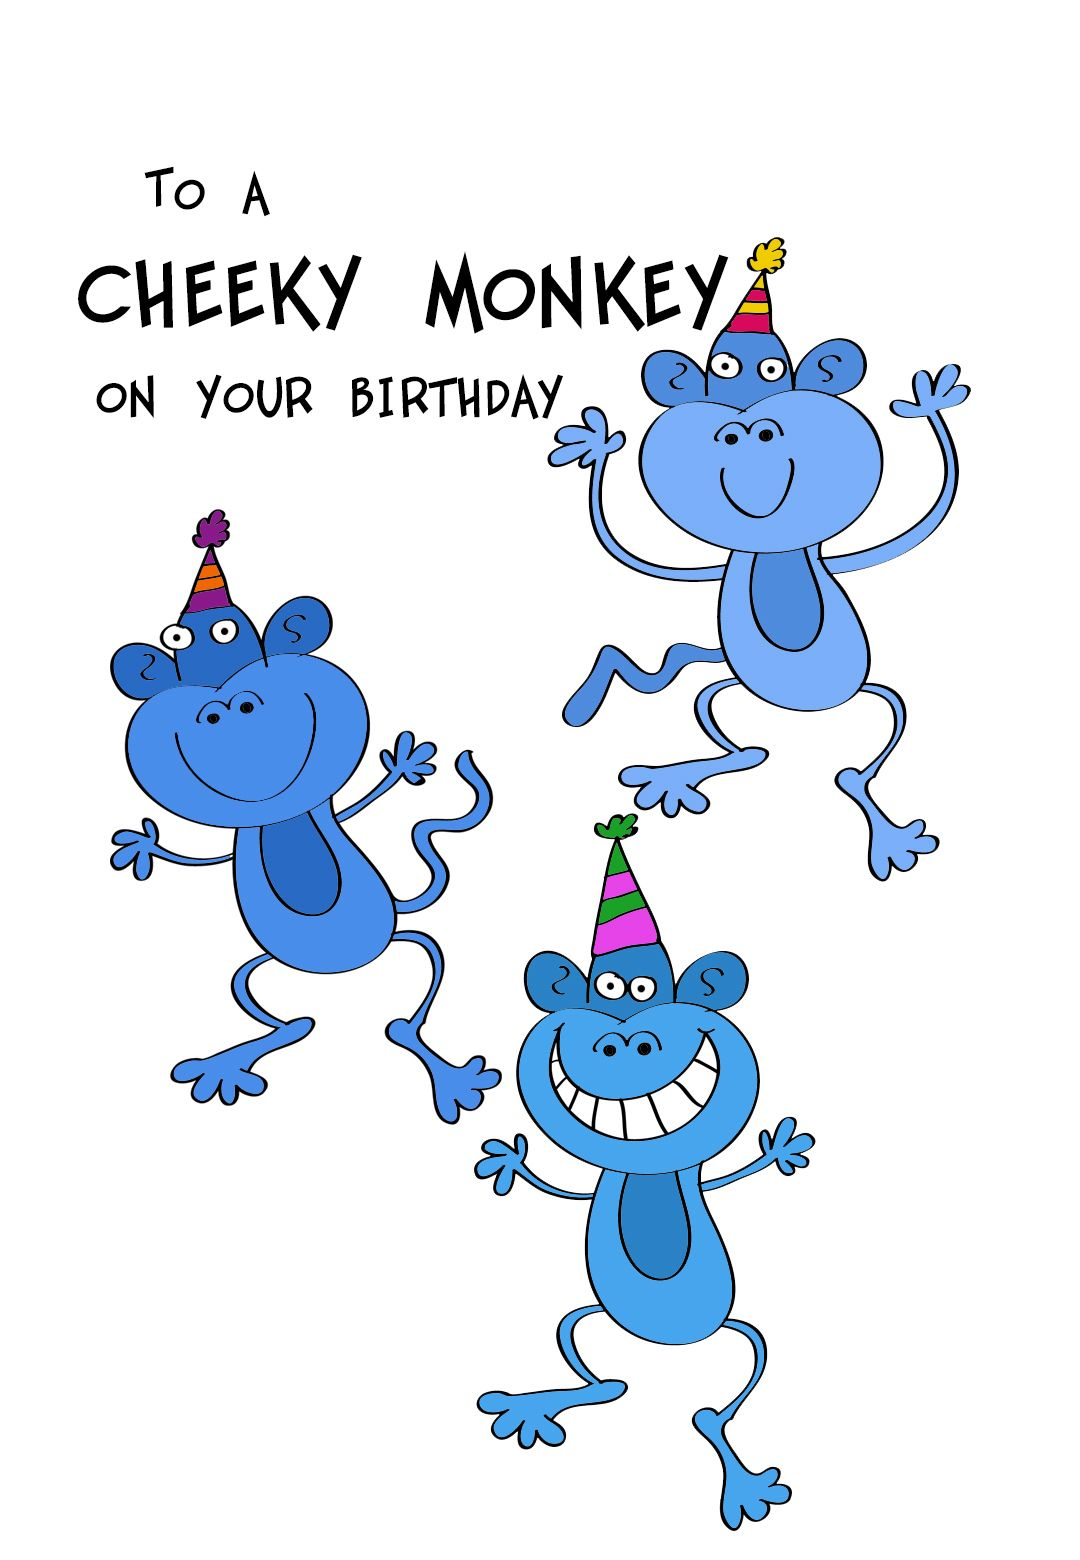 Free Printable To A Cheeky Monkey Greeting Card | FONTS AND ...